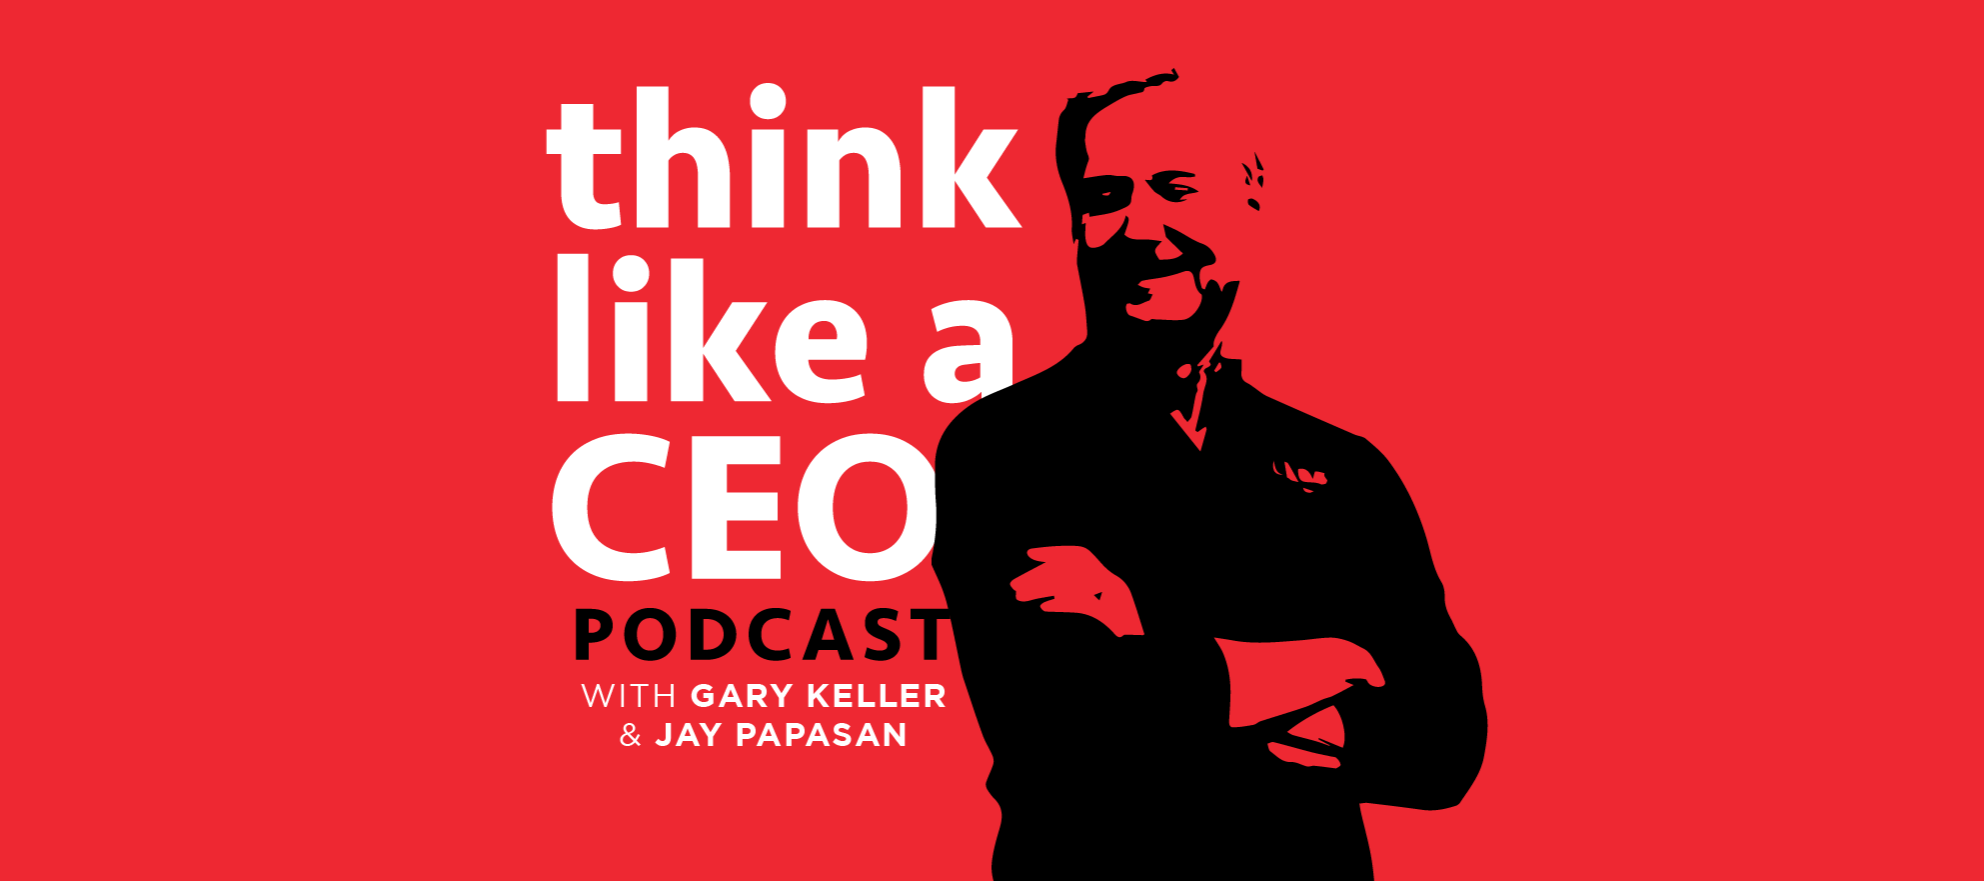 Inman Partners with Keller Williams on Think Like a CEO Podcast